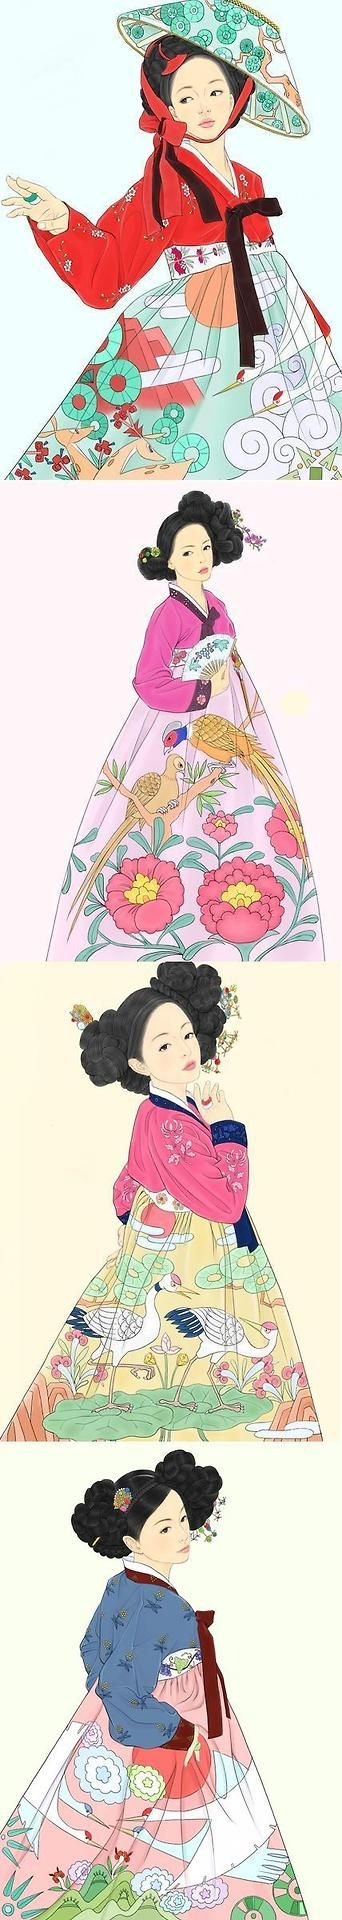 Hanbok Illustrations